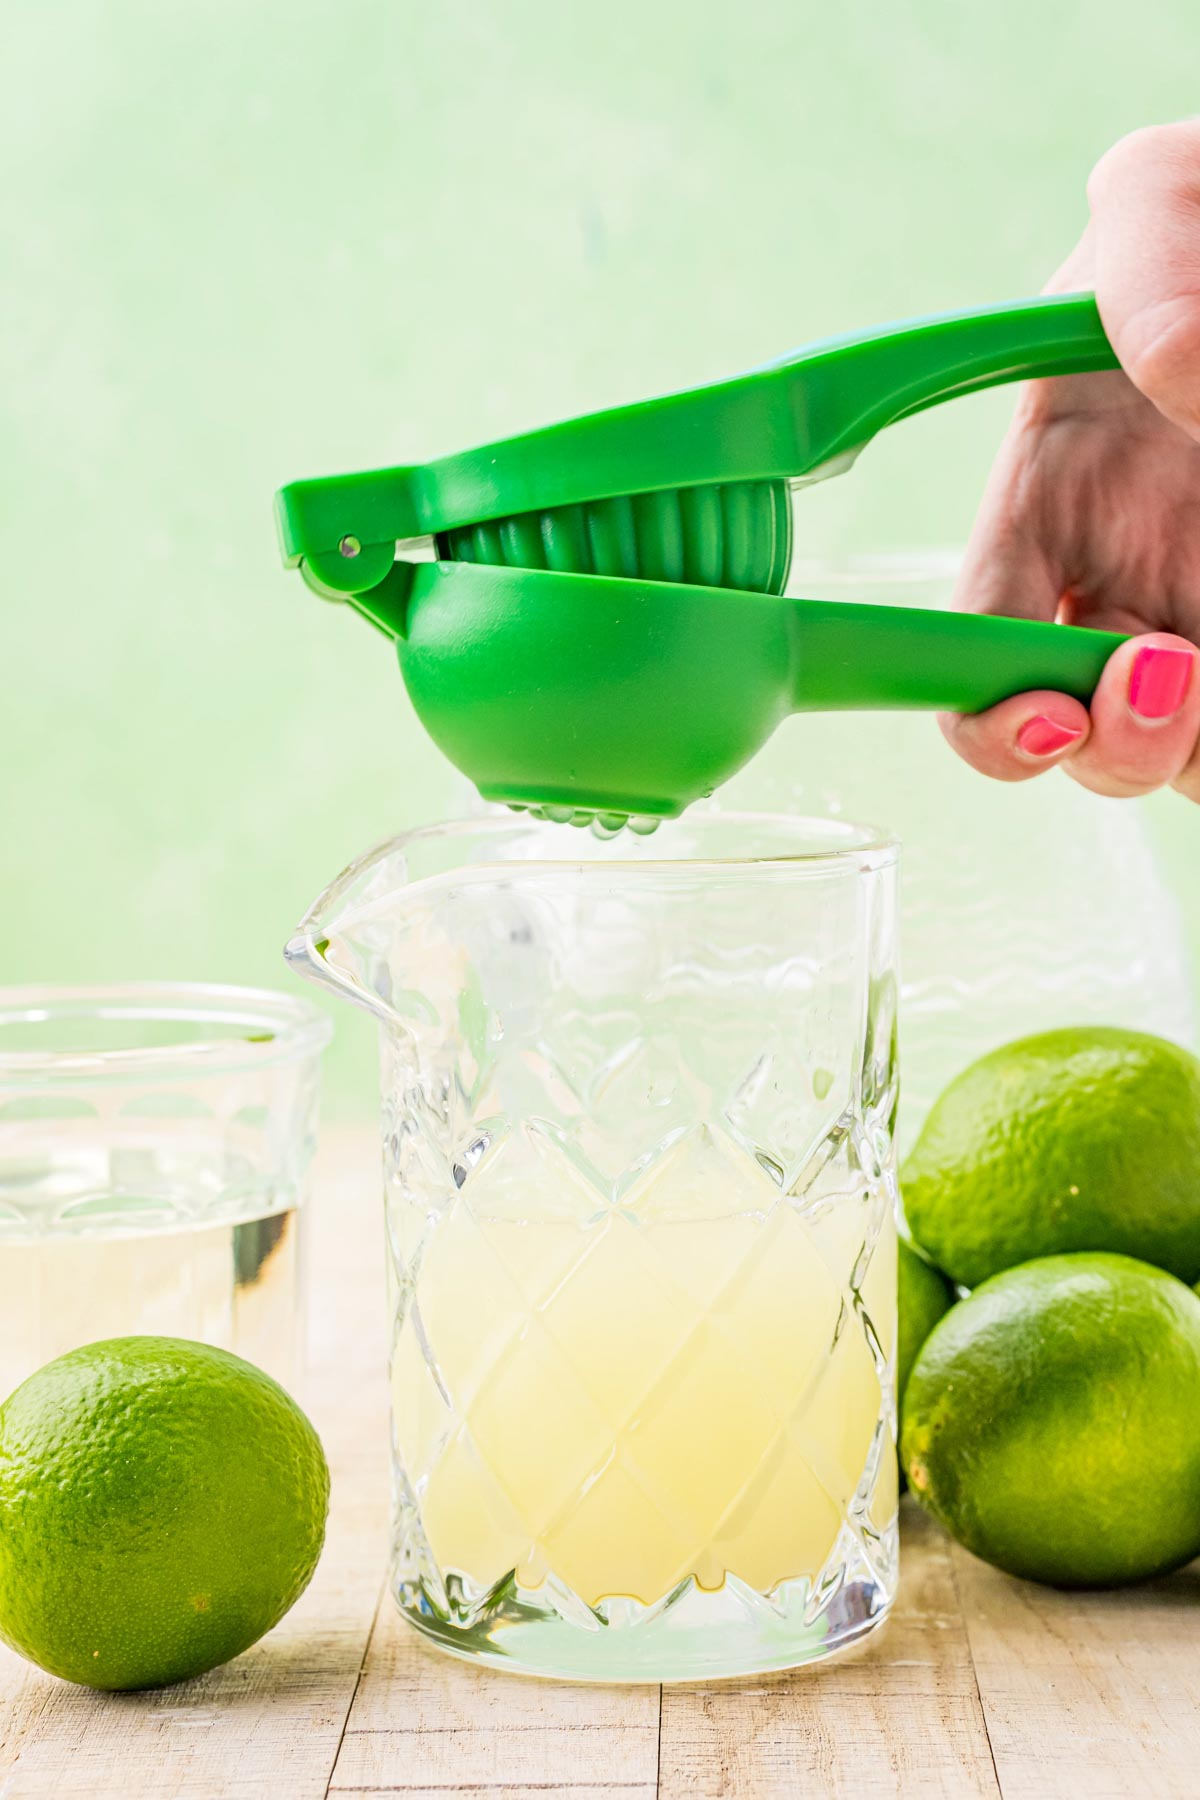 squeezing limes into a glass